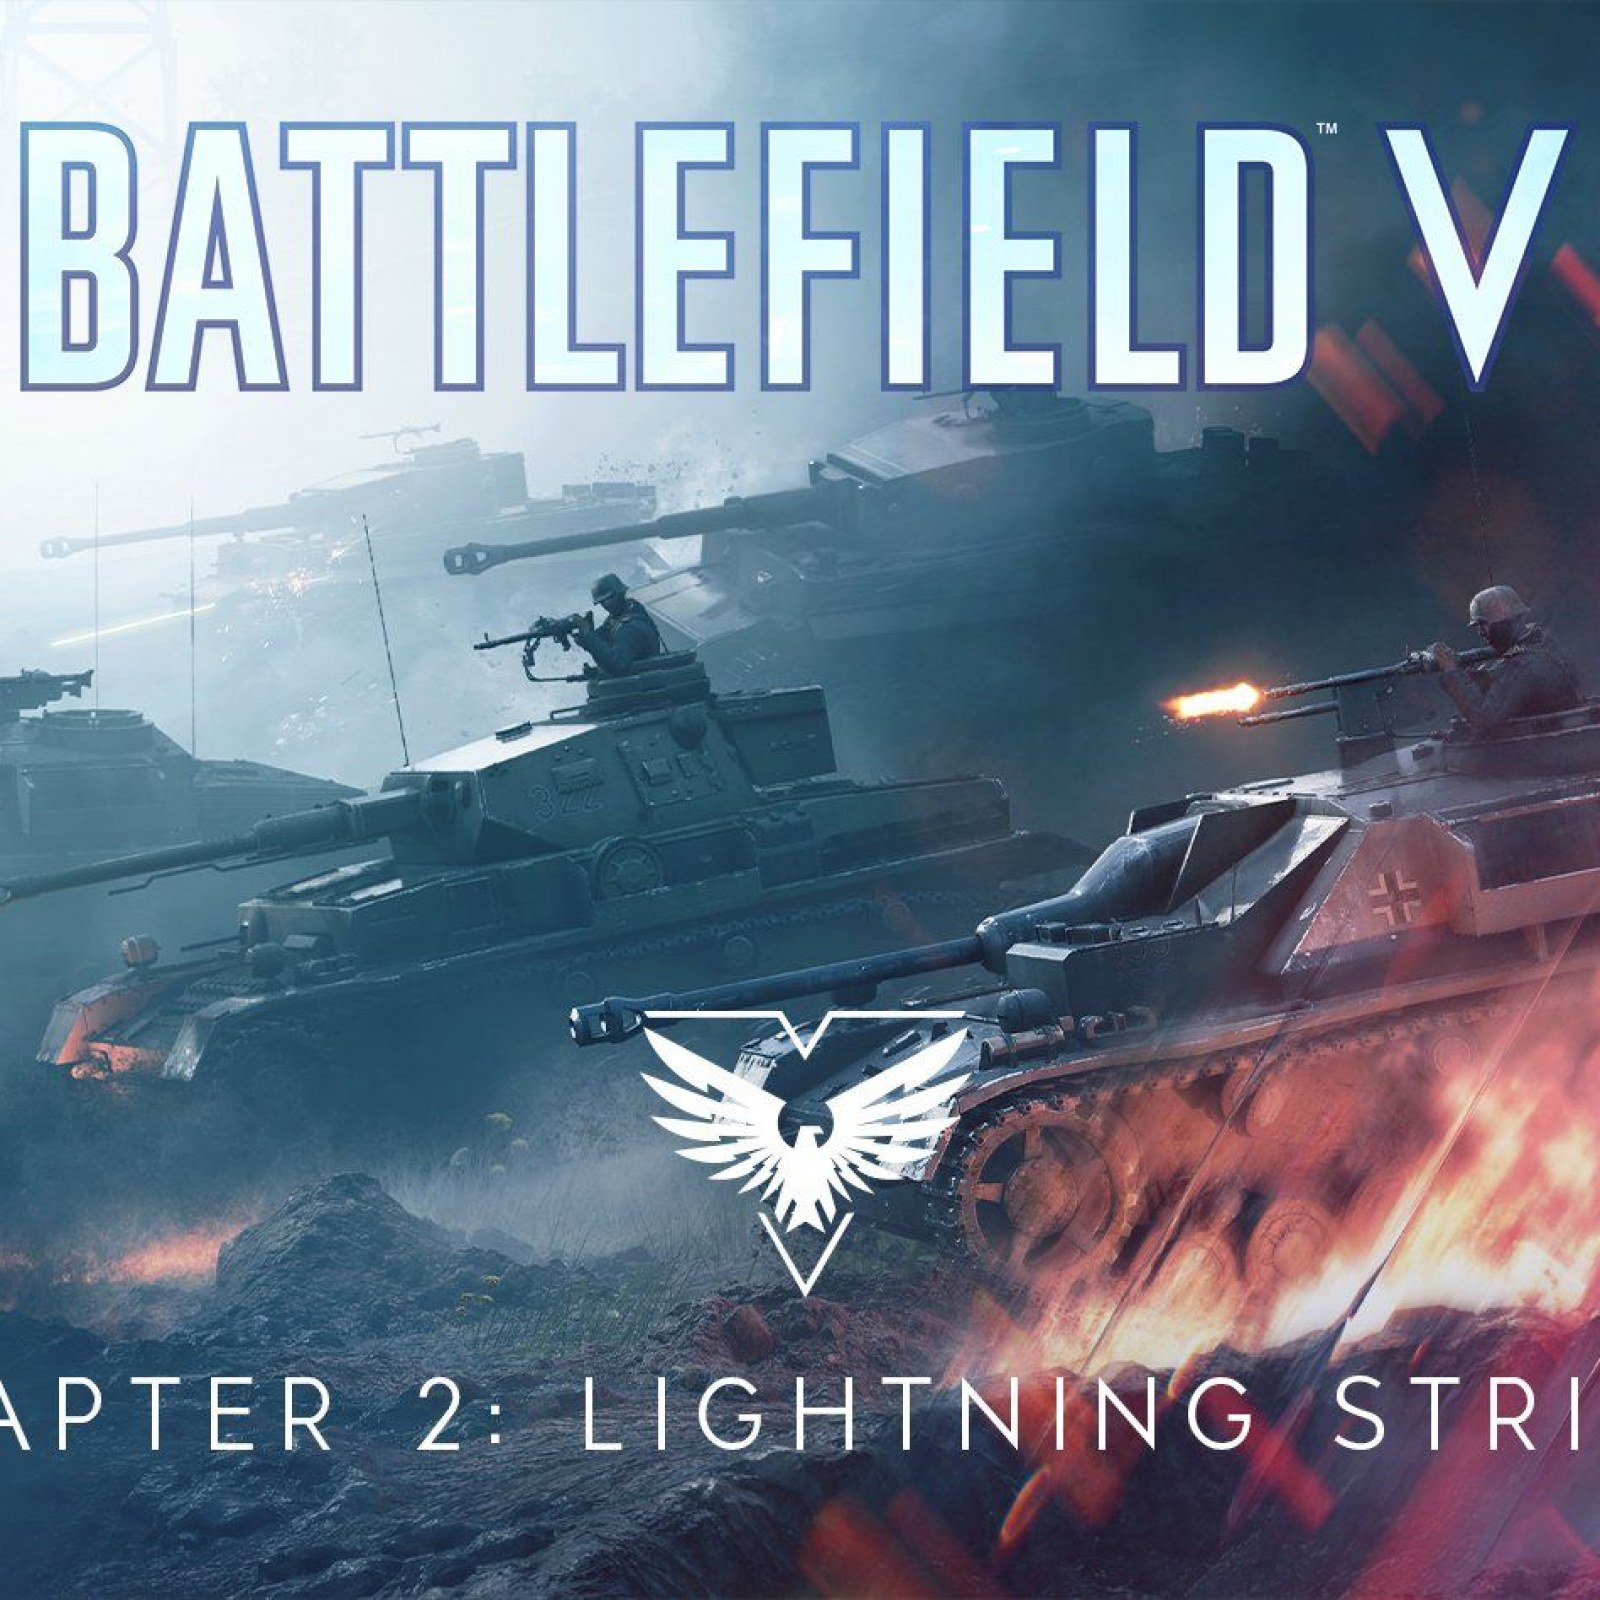 Battlefield 5' Update 1 07 Adds Lightning Strikes DLC for January